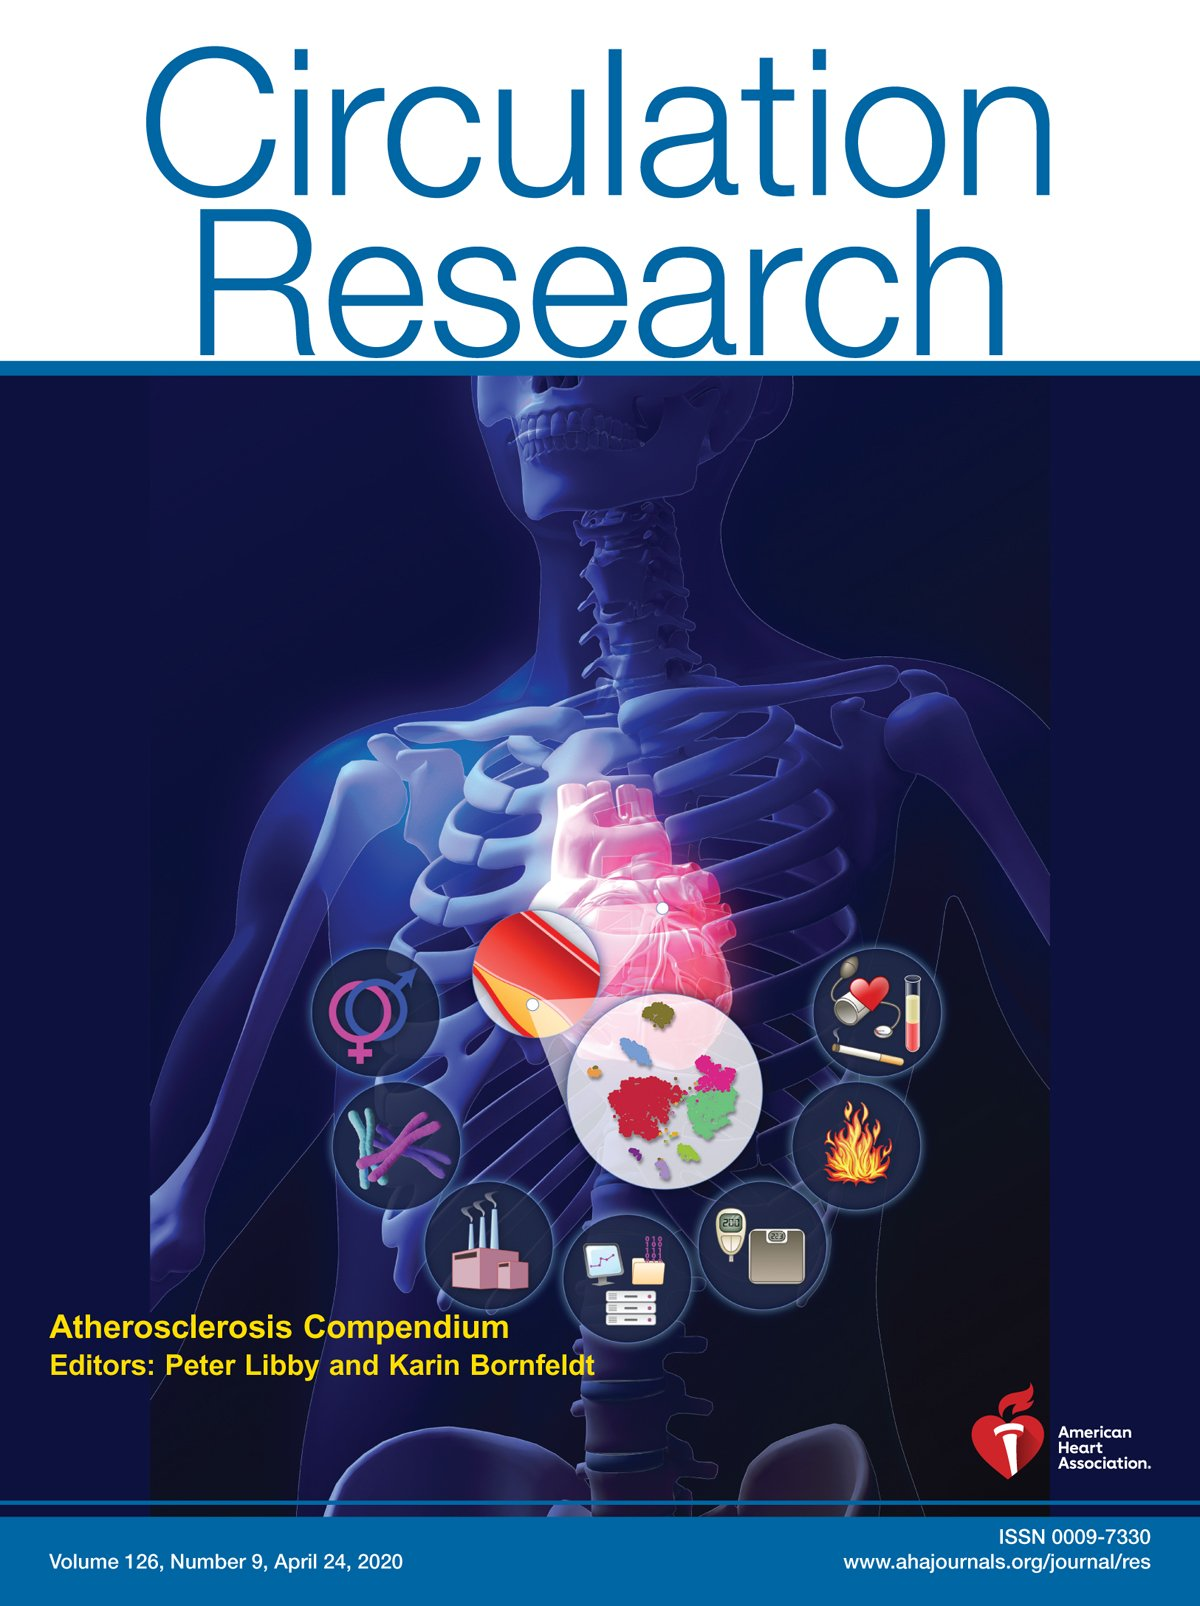 CD31 as a Therapeutic Target in Atherosclerosis